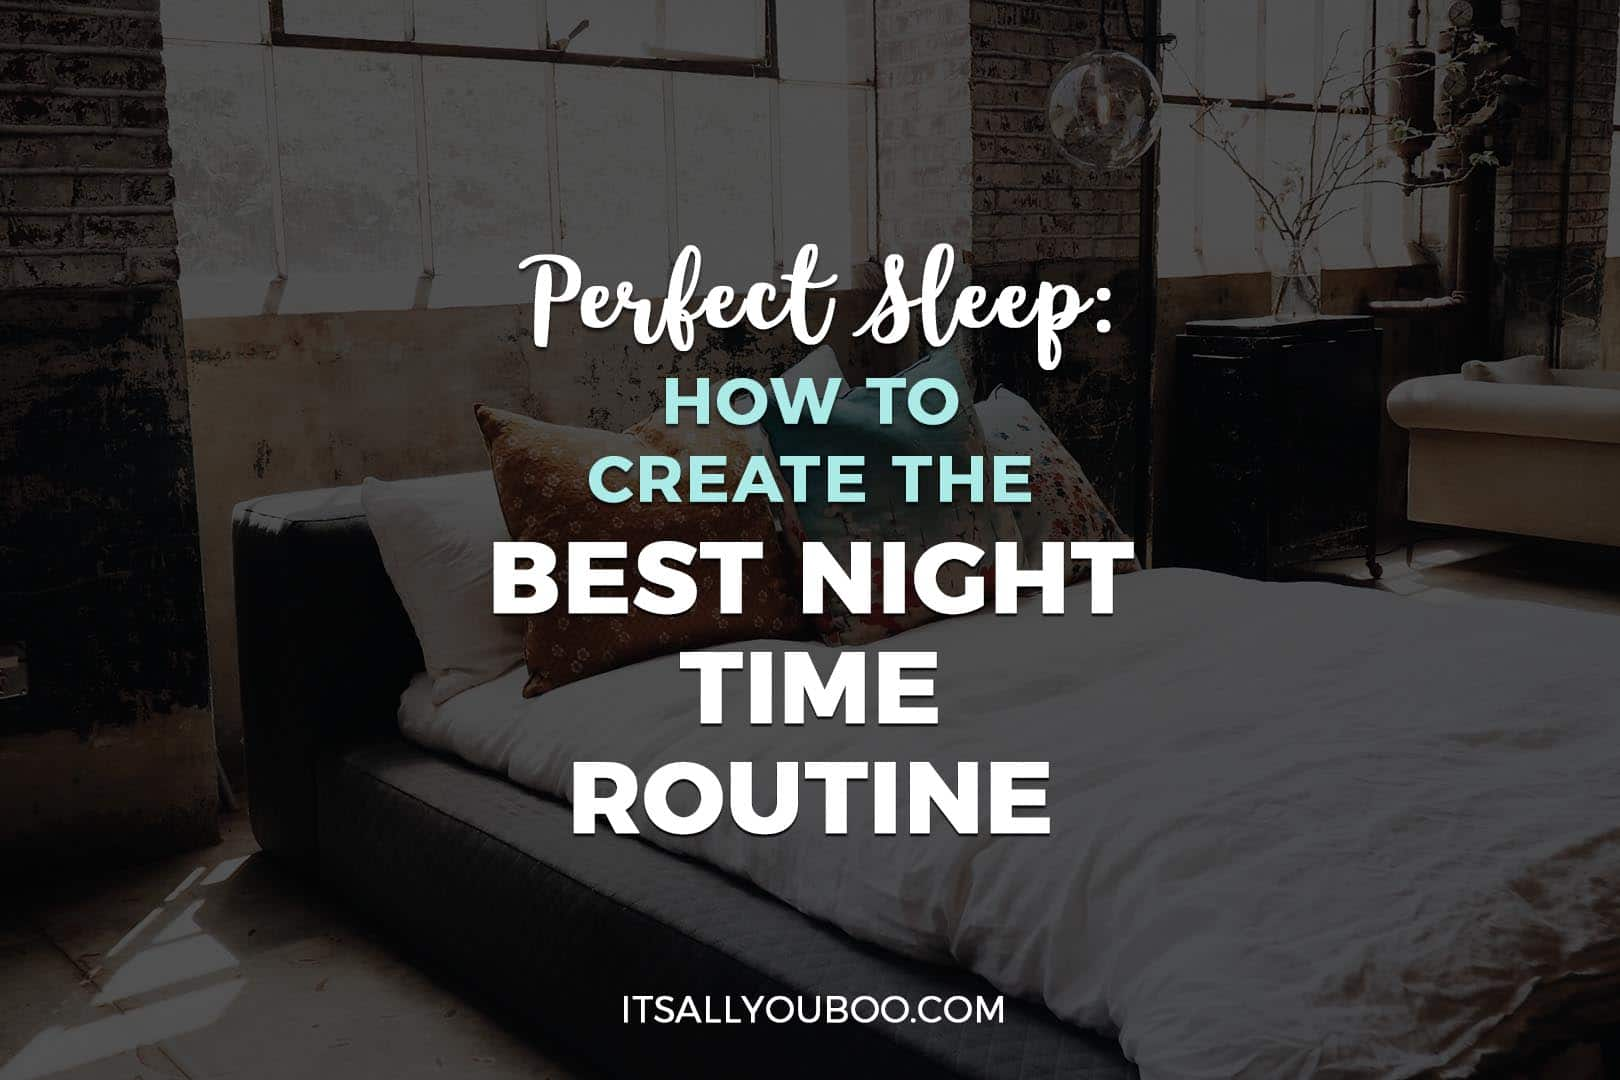 Perfect Sleep: How to Create the Best Night Time Routine